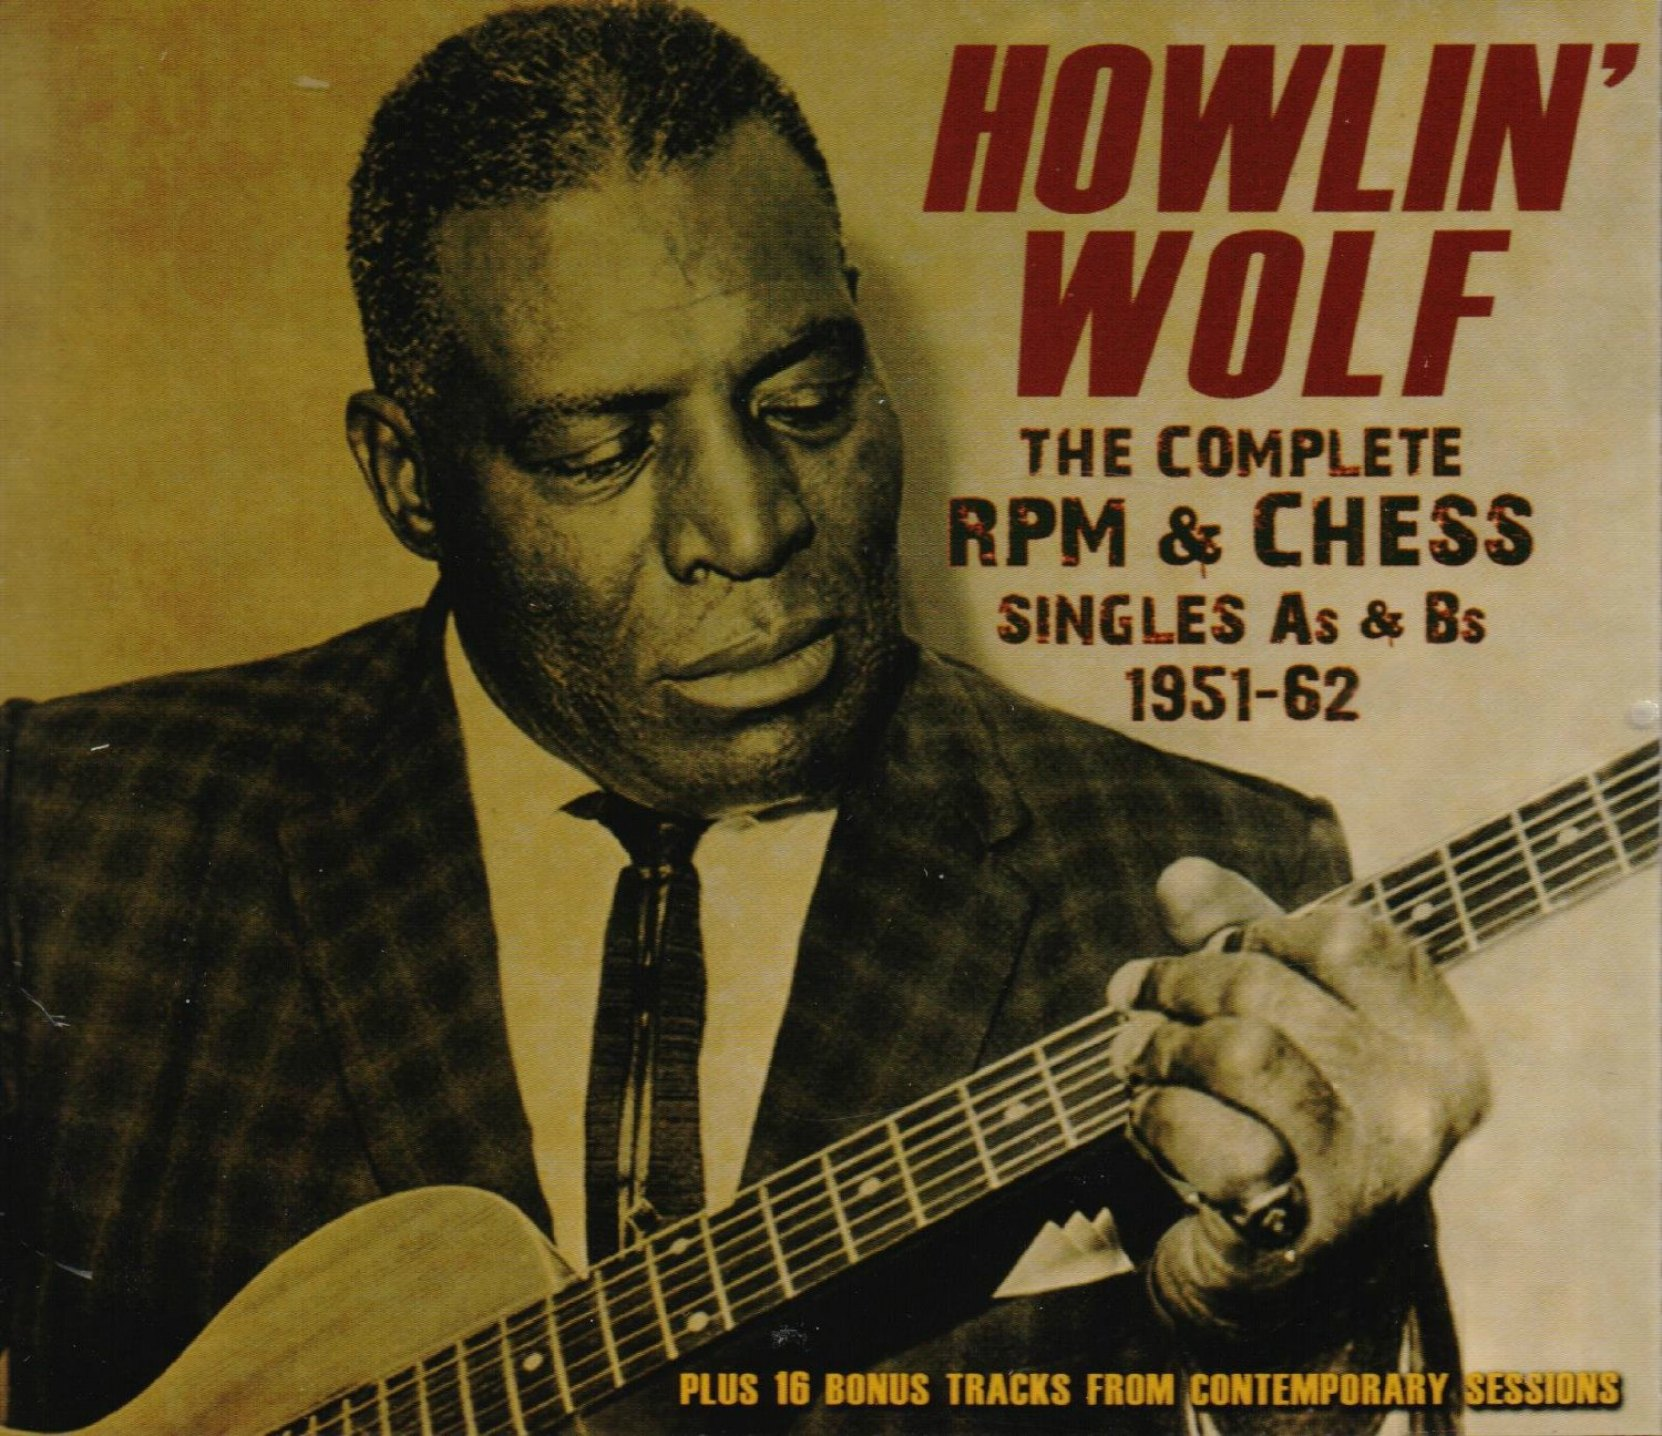 CD cover, Howlin' Wolf, The Complete RPM & Chess Singles As & Bs 1951-62, on Acrobat Records